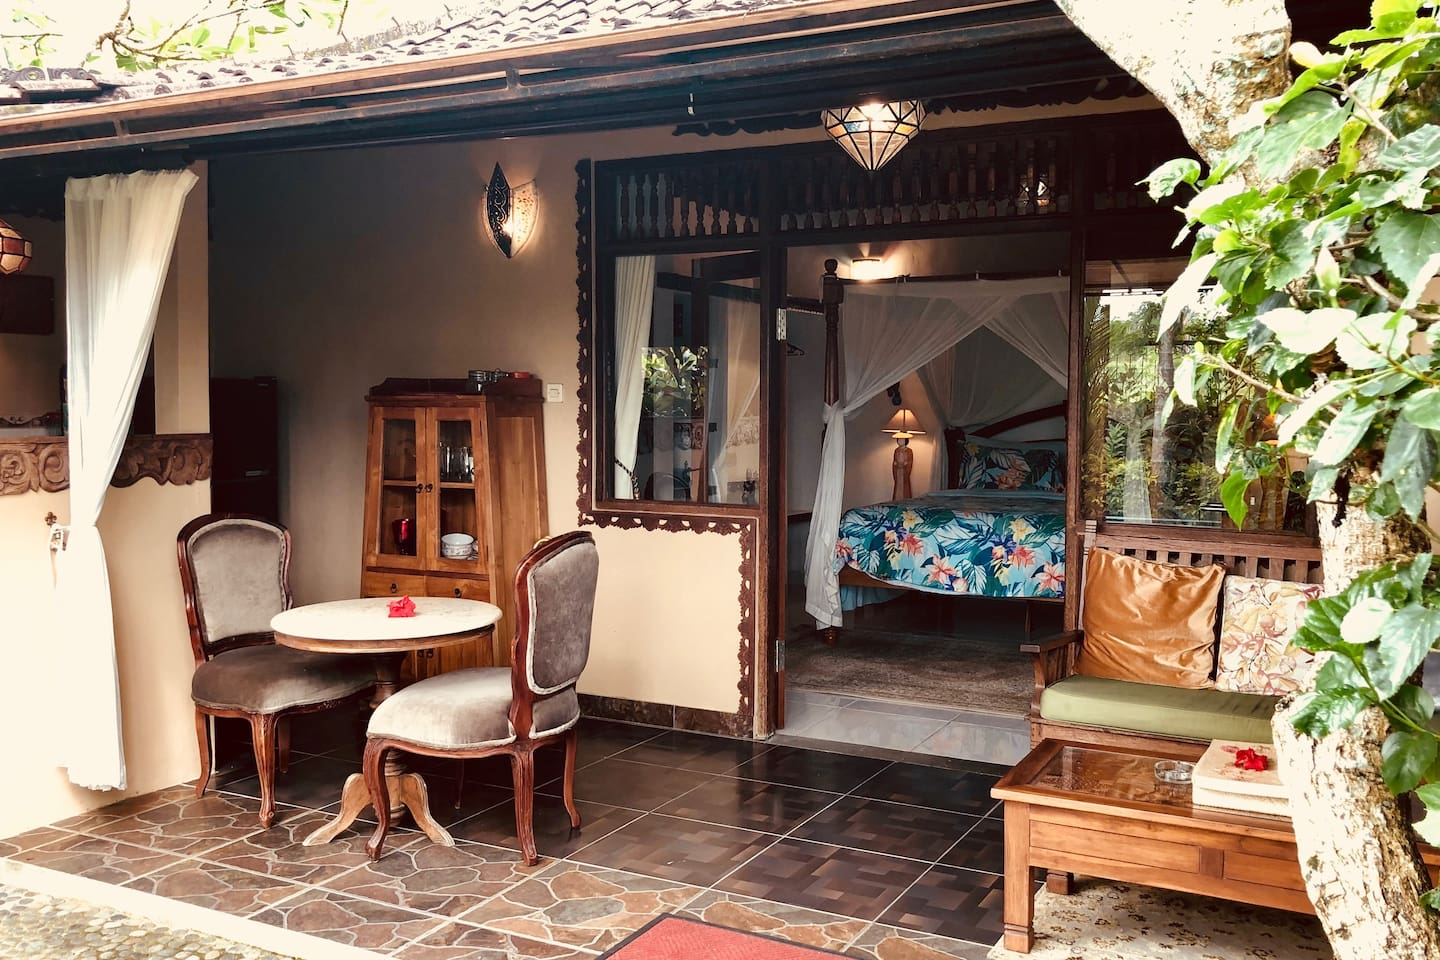 Jacaranda - a complete hideaway Bali  cottage with good wifi and a comfy bed - AC in the bedroom and an outdoor shower.  Peek of the rice fields and shared salt pool .